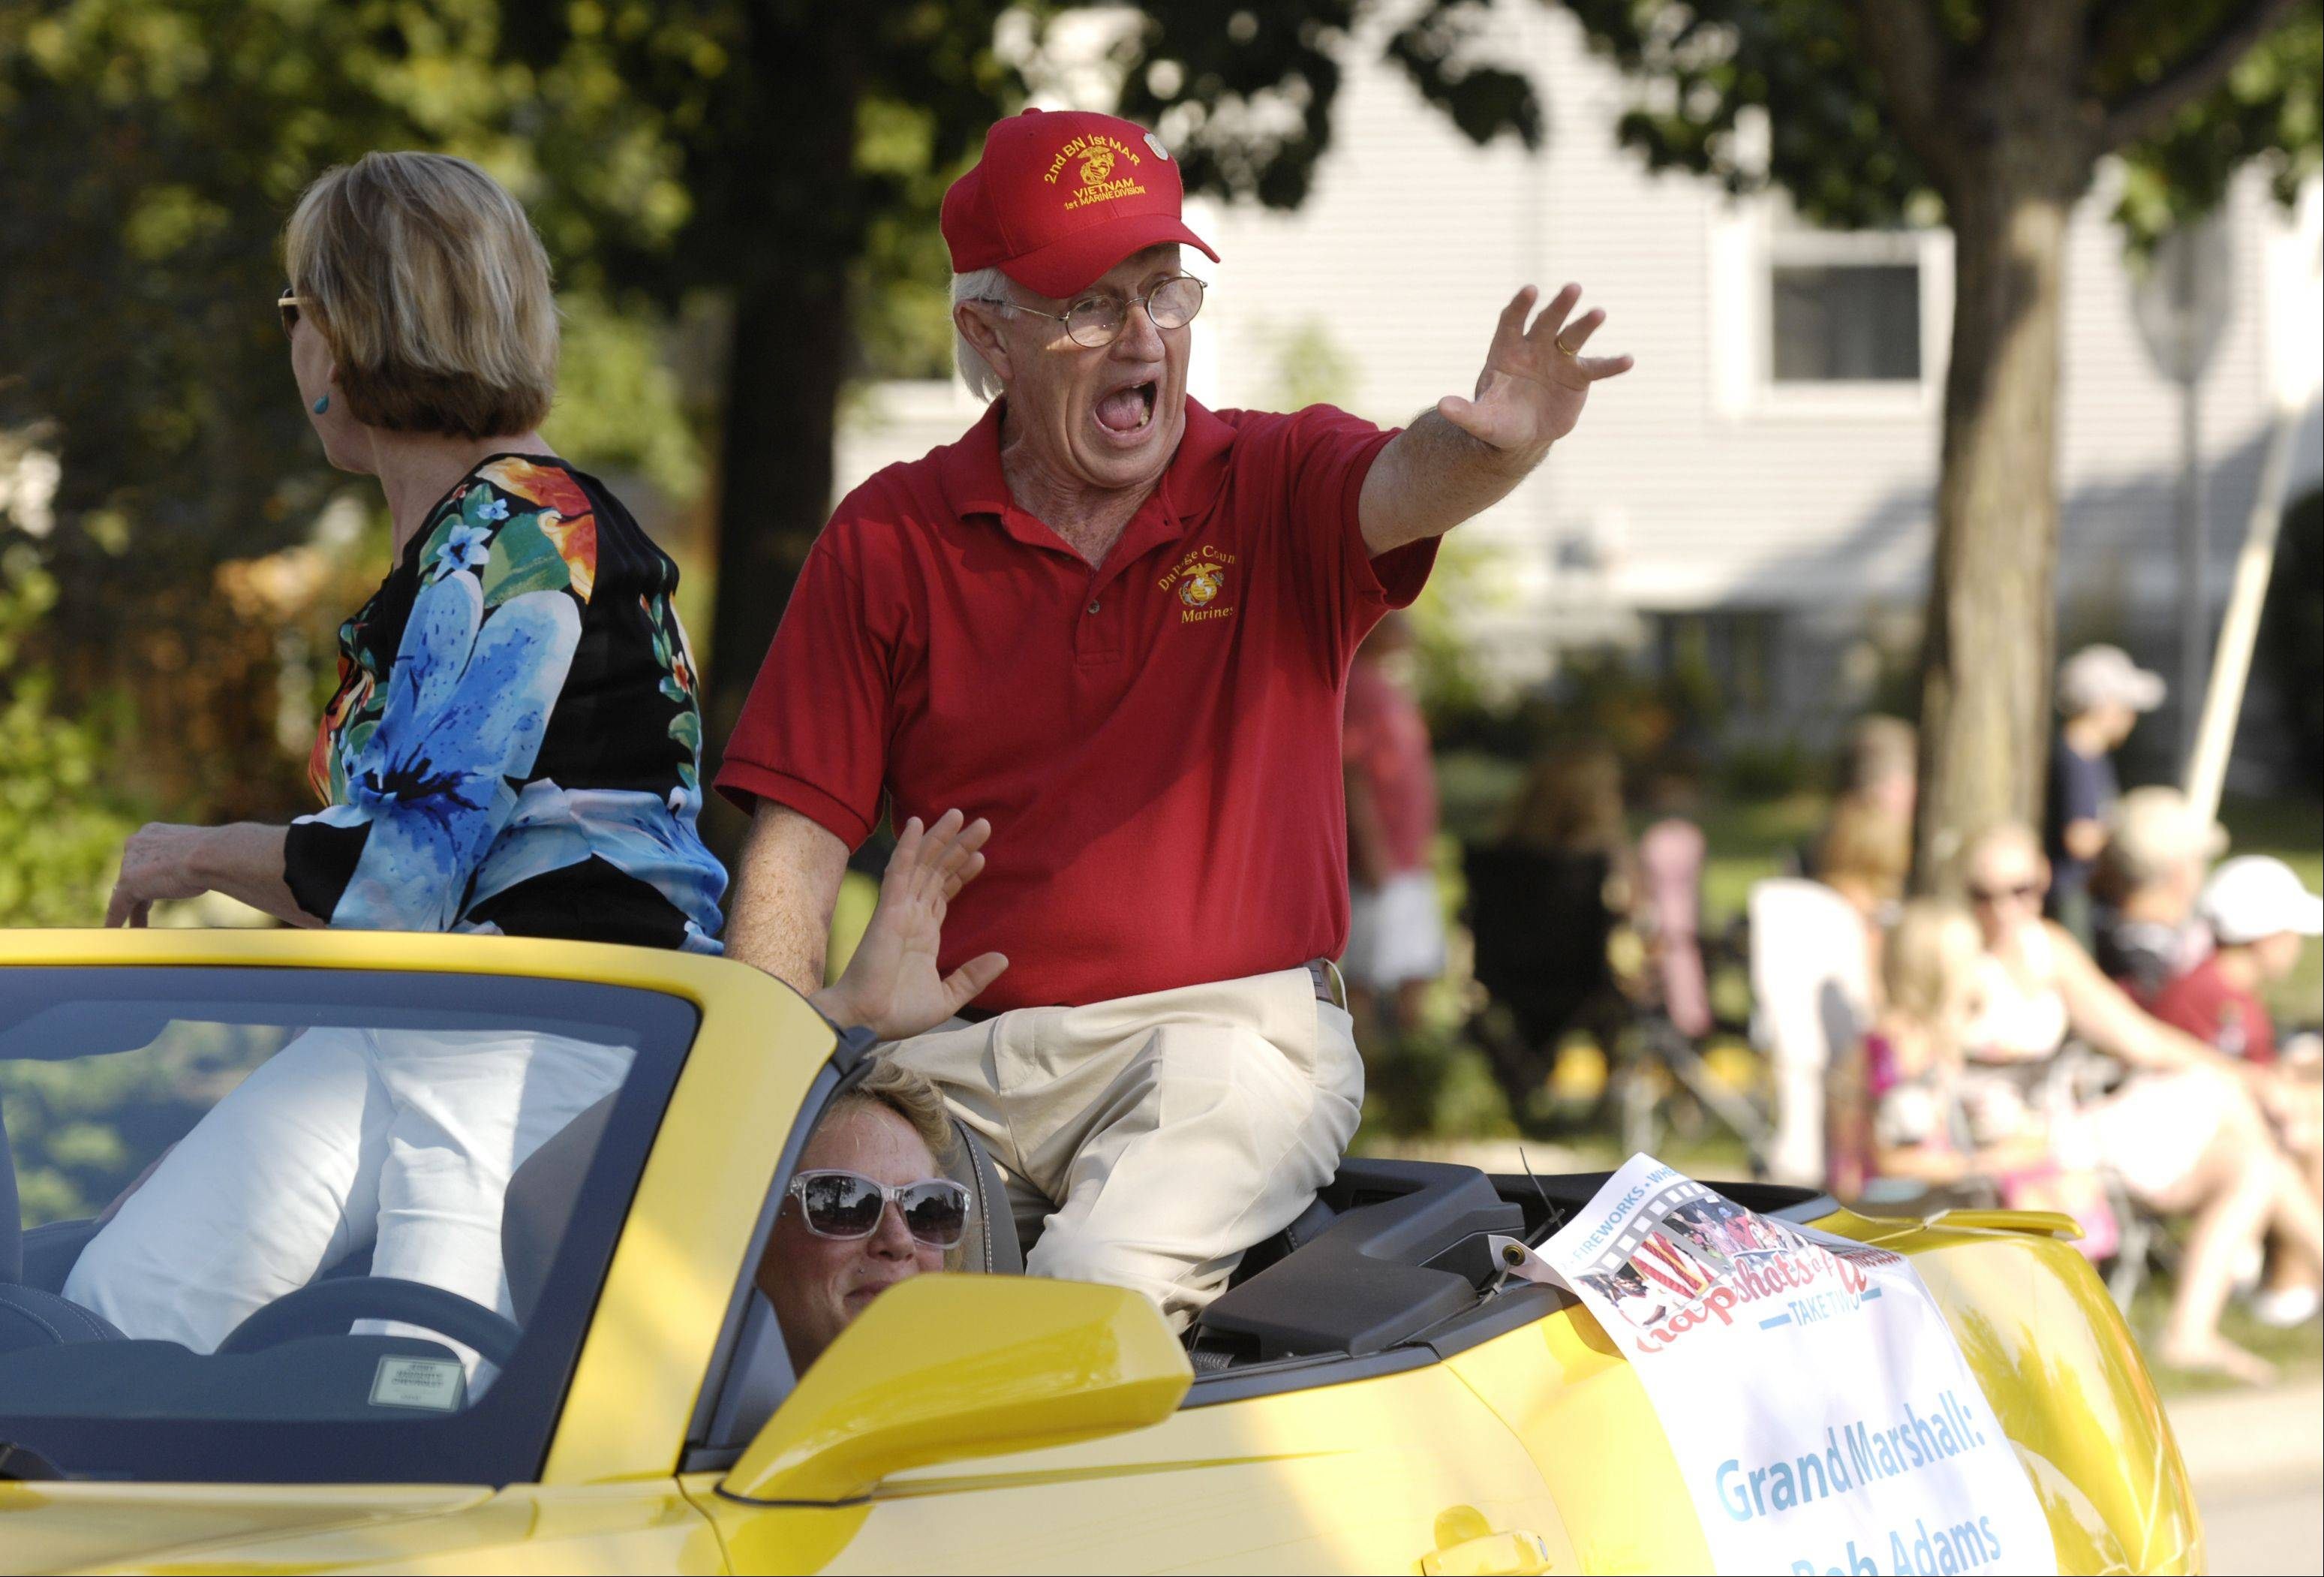 Bob Adams, founder of the Midwest Shelter for Homeless Veterans and grand marshal of the rescheduled Wheaton Fourth of July parade on Labor Day, waves to the crowds as the parade heads down Main Street. The parade was rescheduled because of storm damage from July 1.